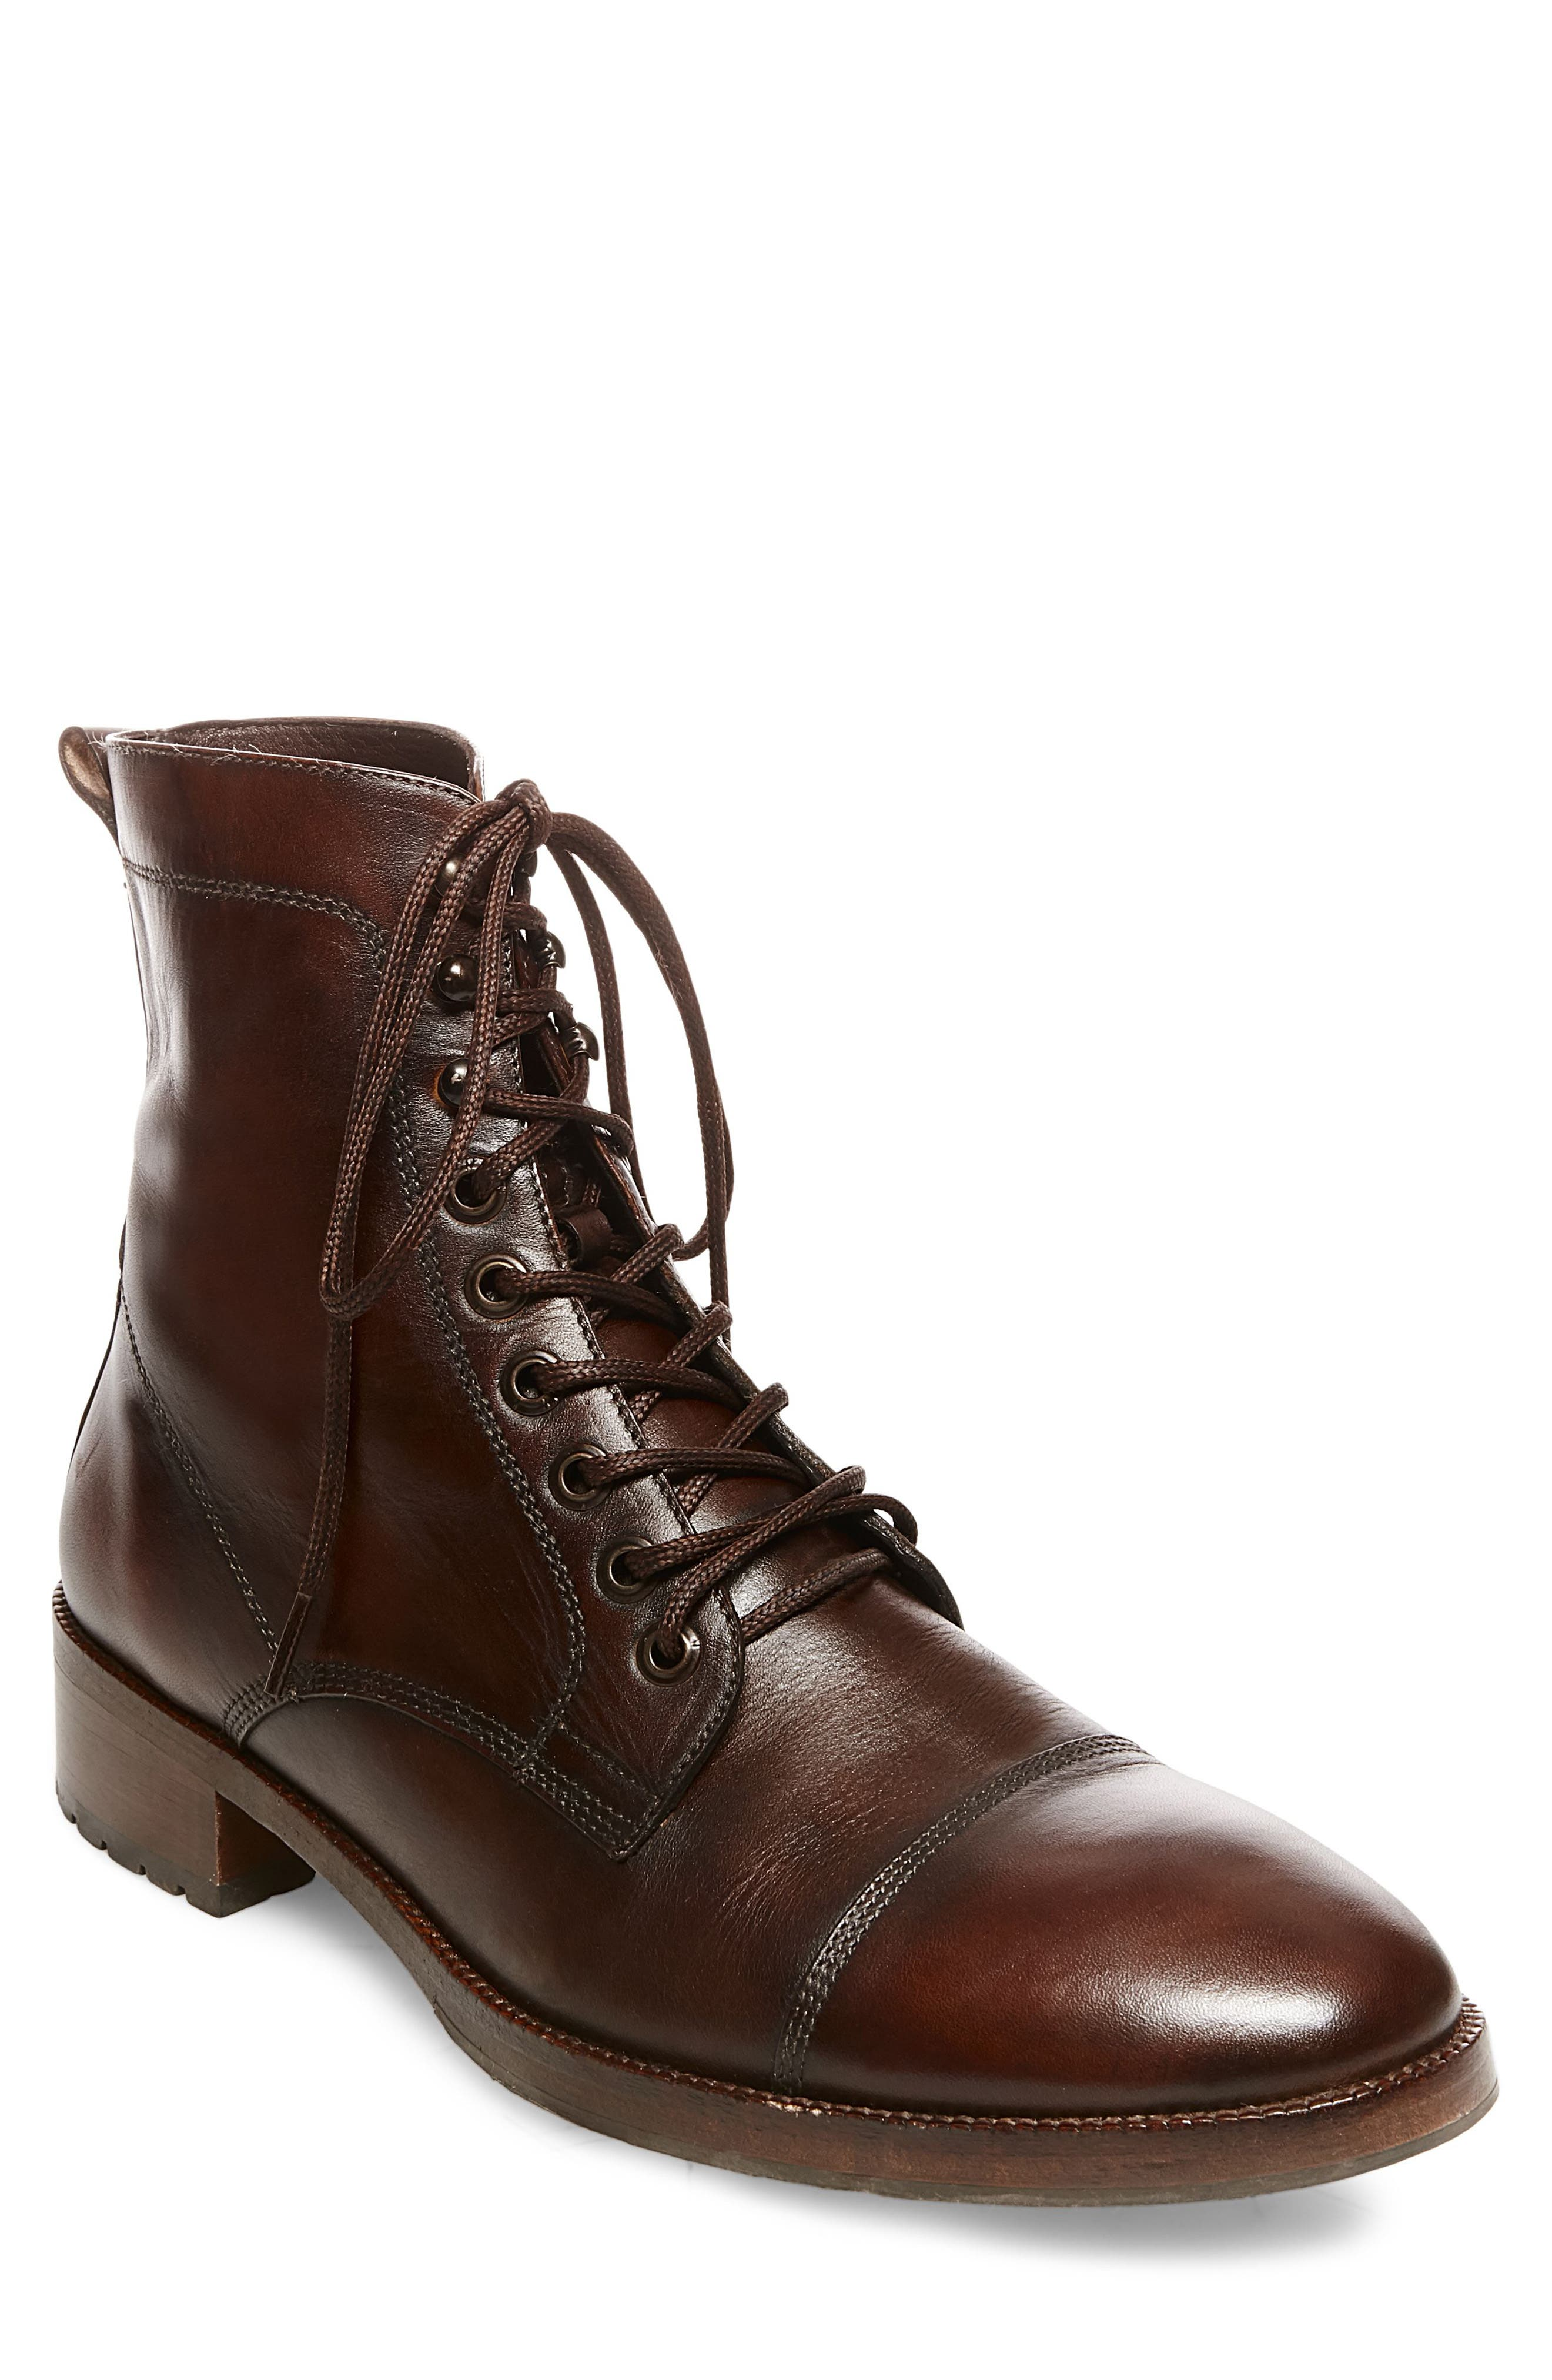 x GQ Ted Cap Toe Boot,                             Main thumbnail 1, color,                             Brown Leather